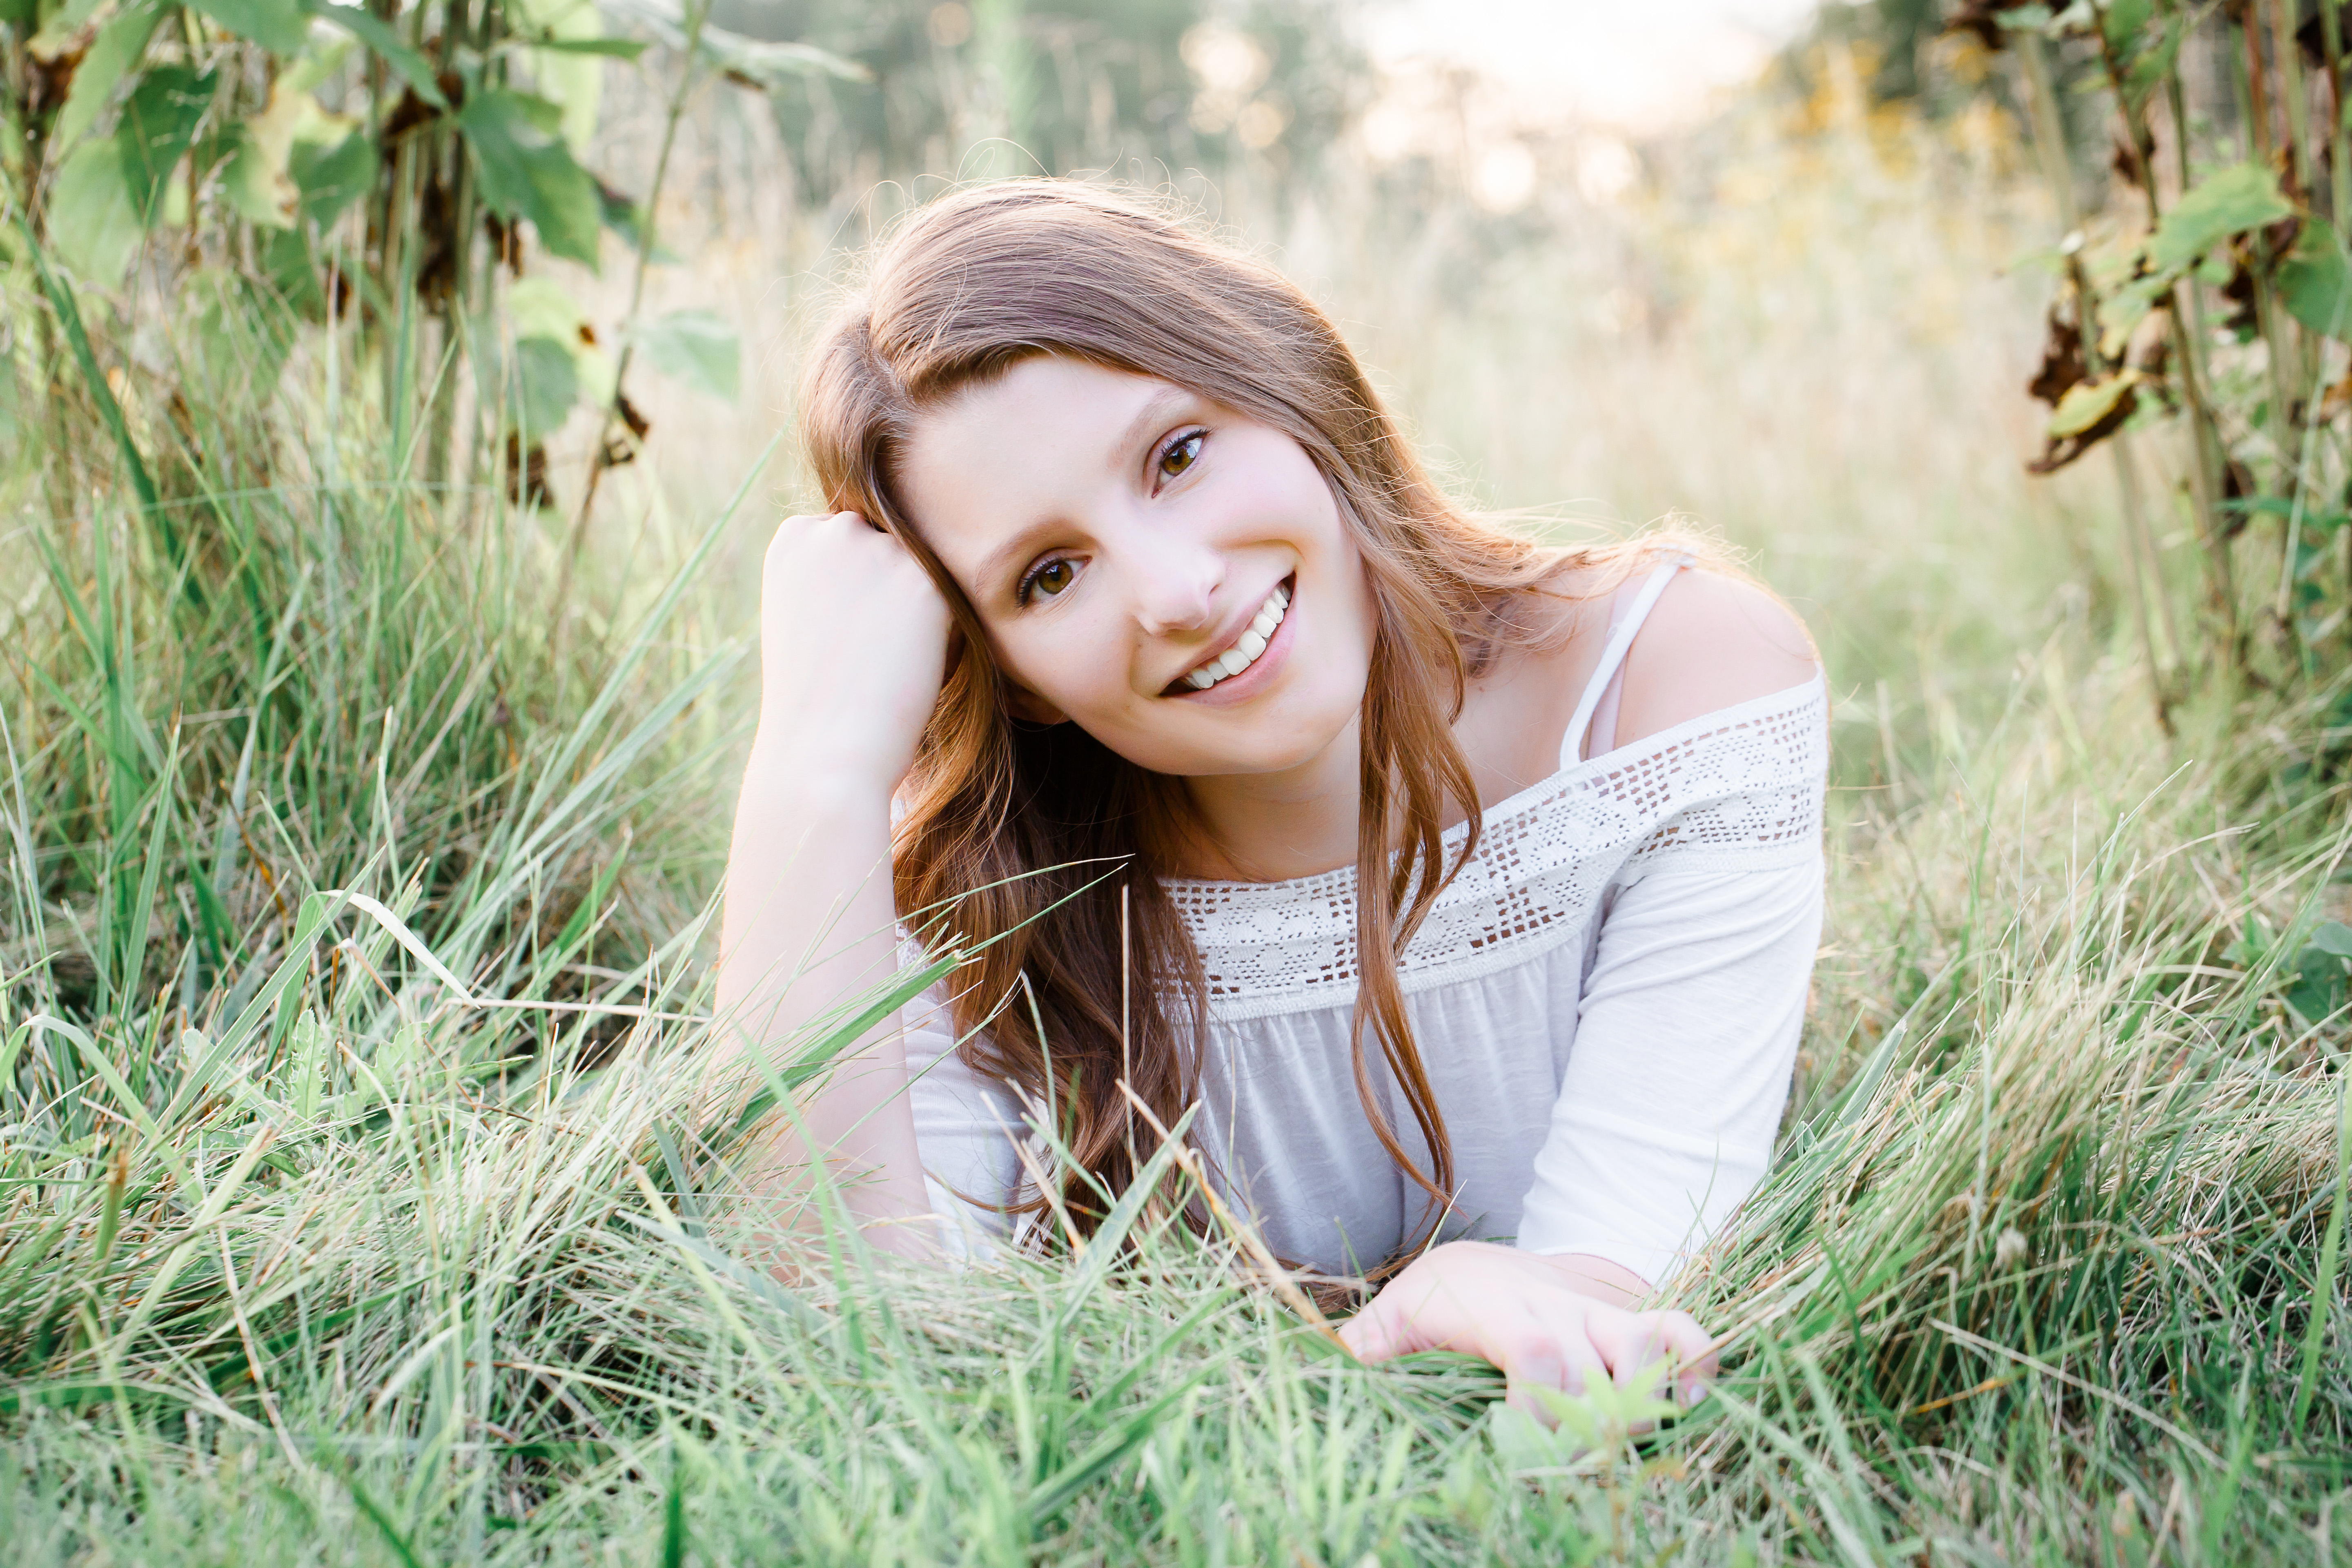 girl-in-field-senior-picture-ideas-findl